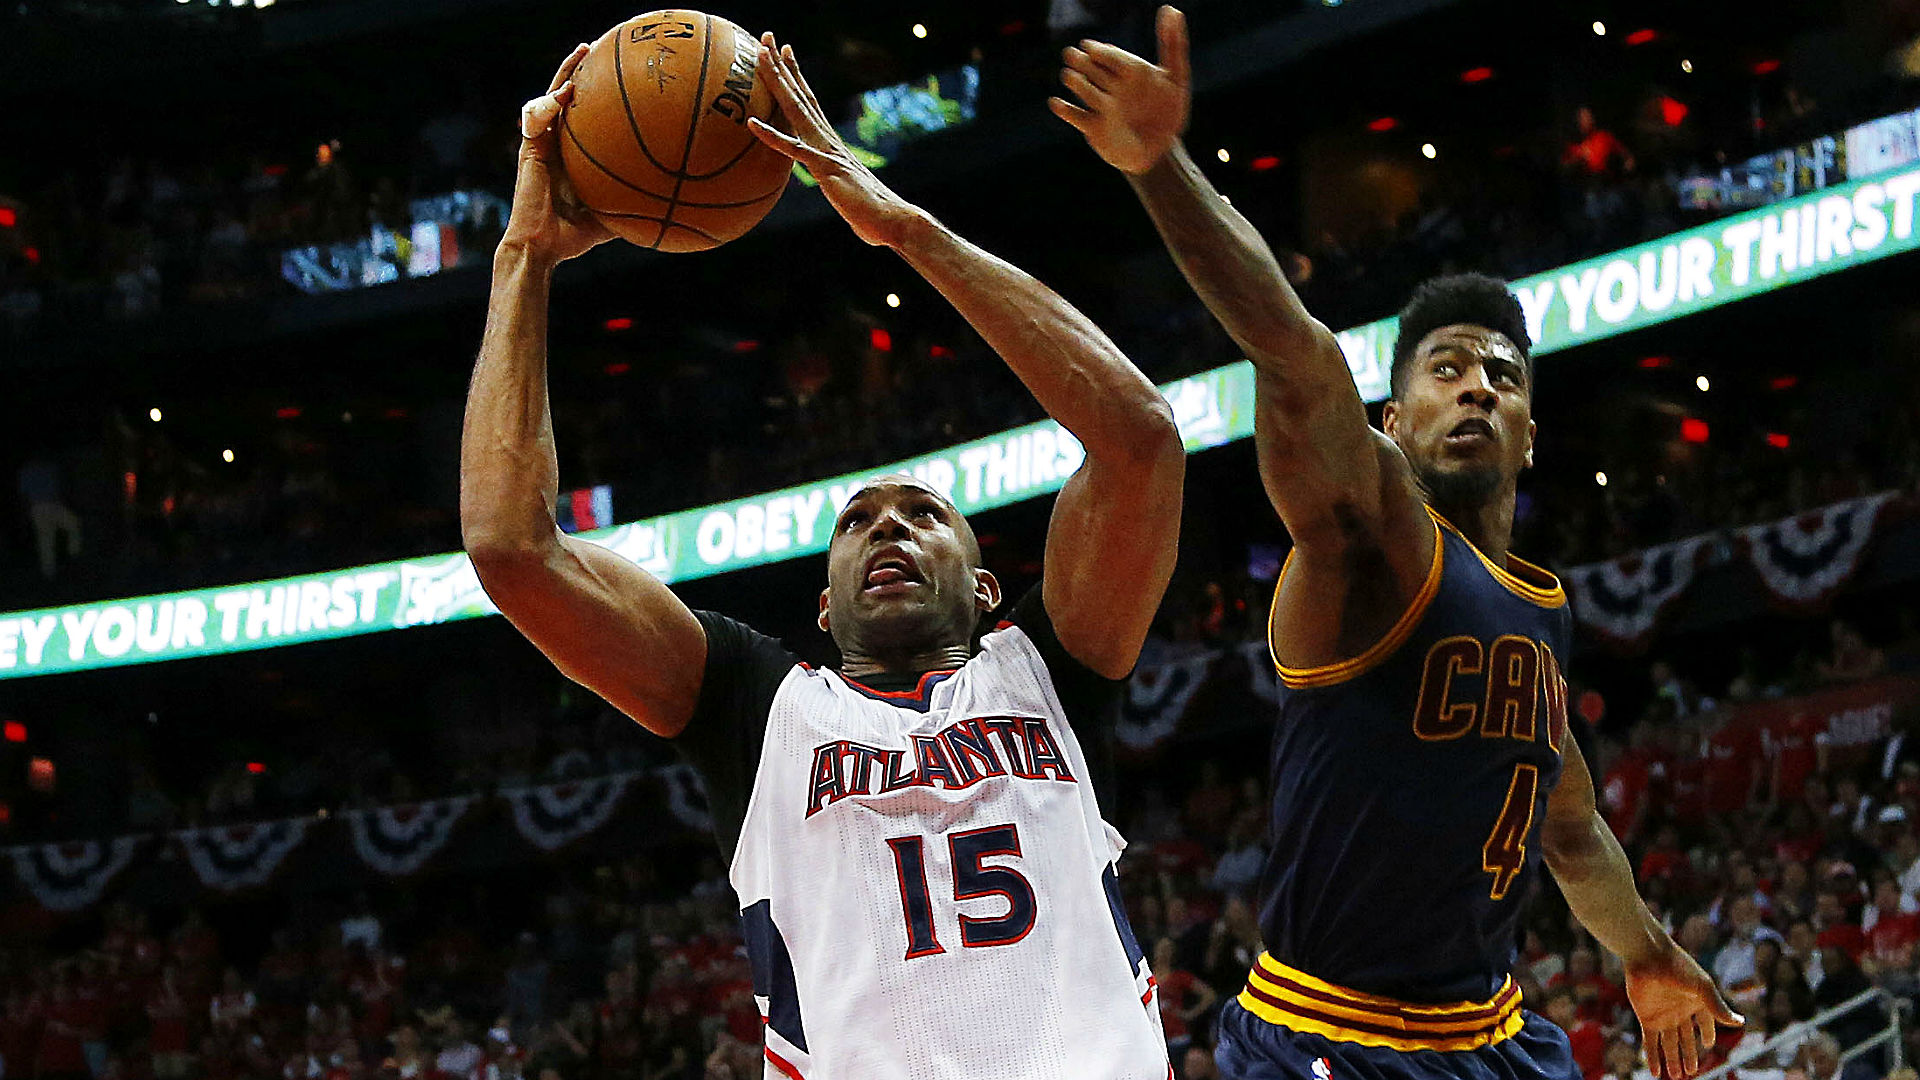 Cavaliers vs. Hawks Game 2 betting line and pick – Spread swings in Atlanta's direction